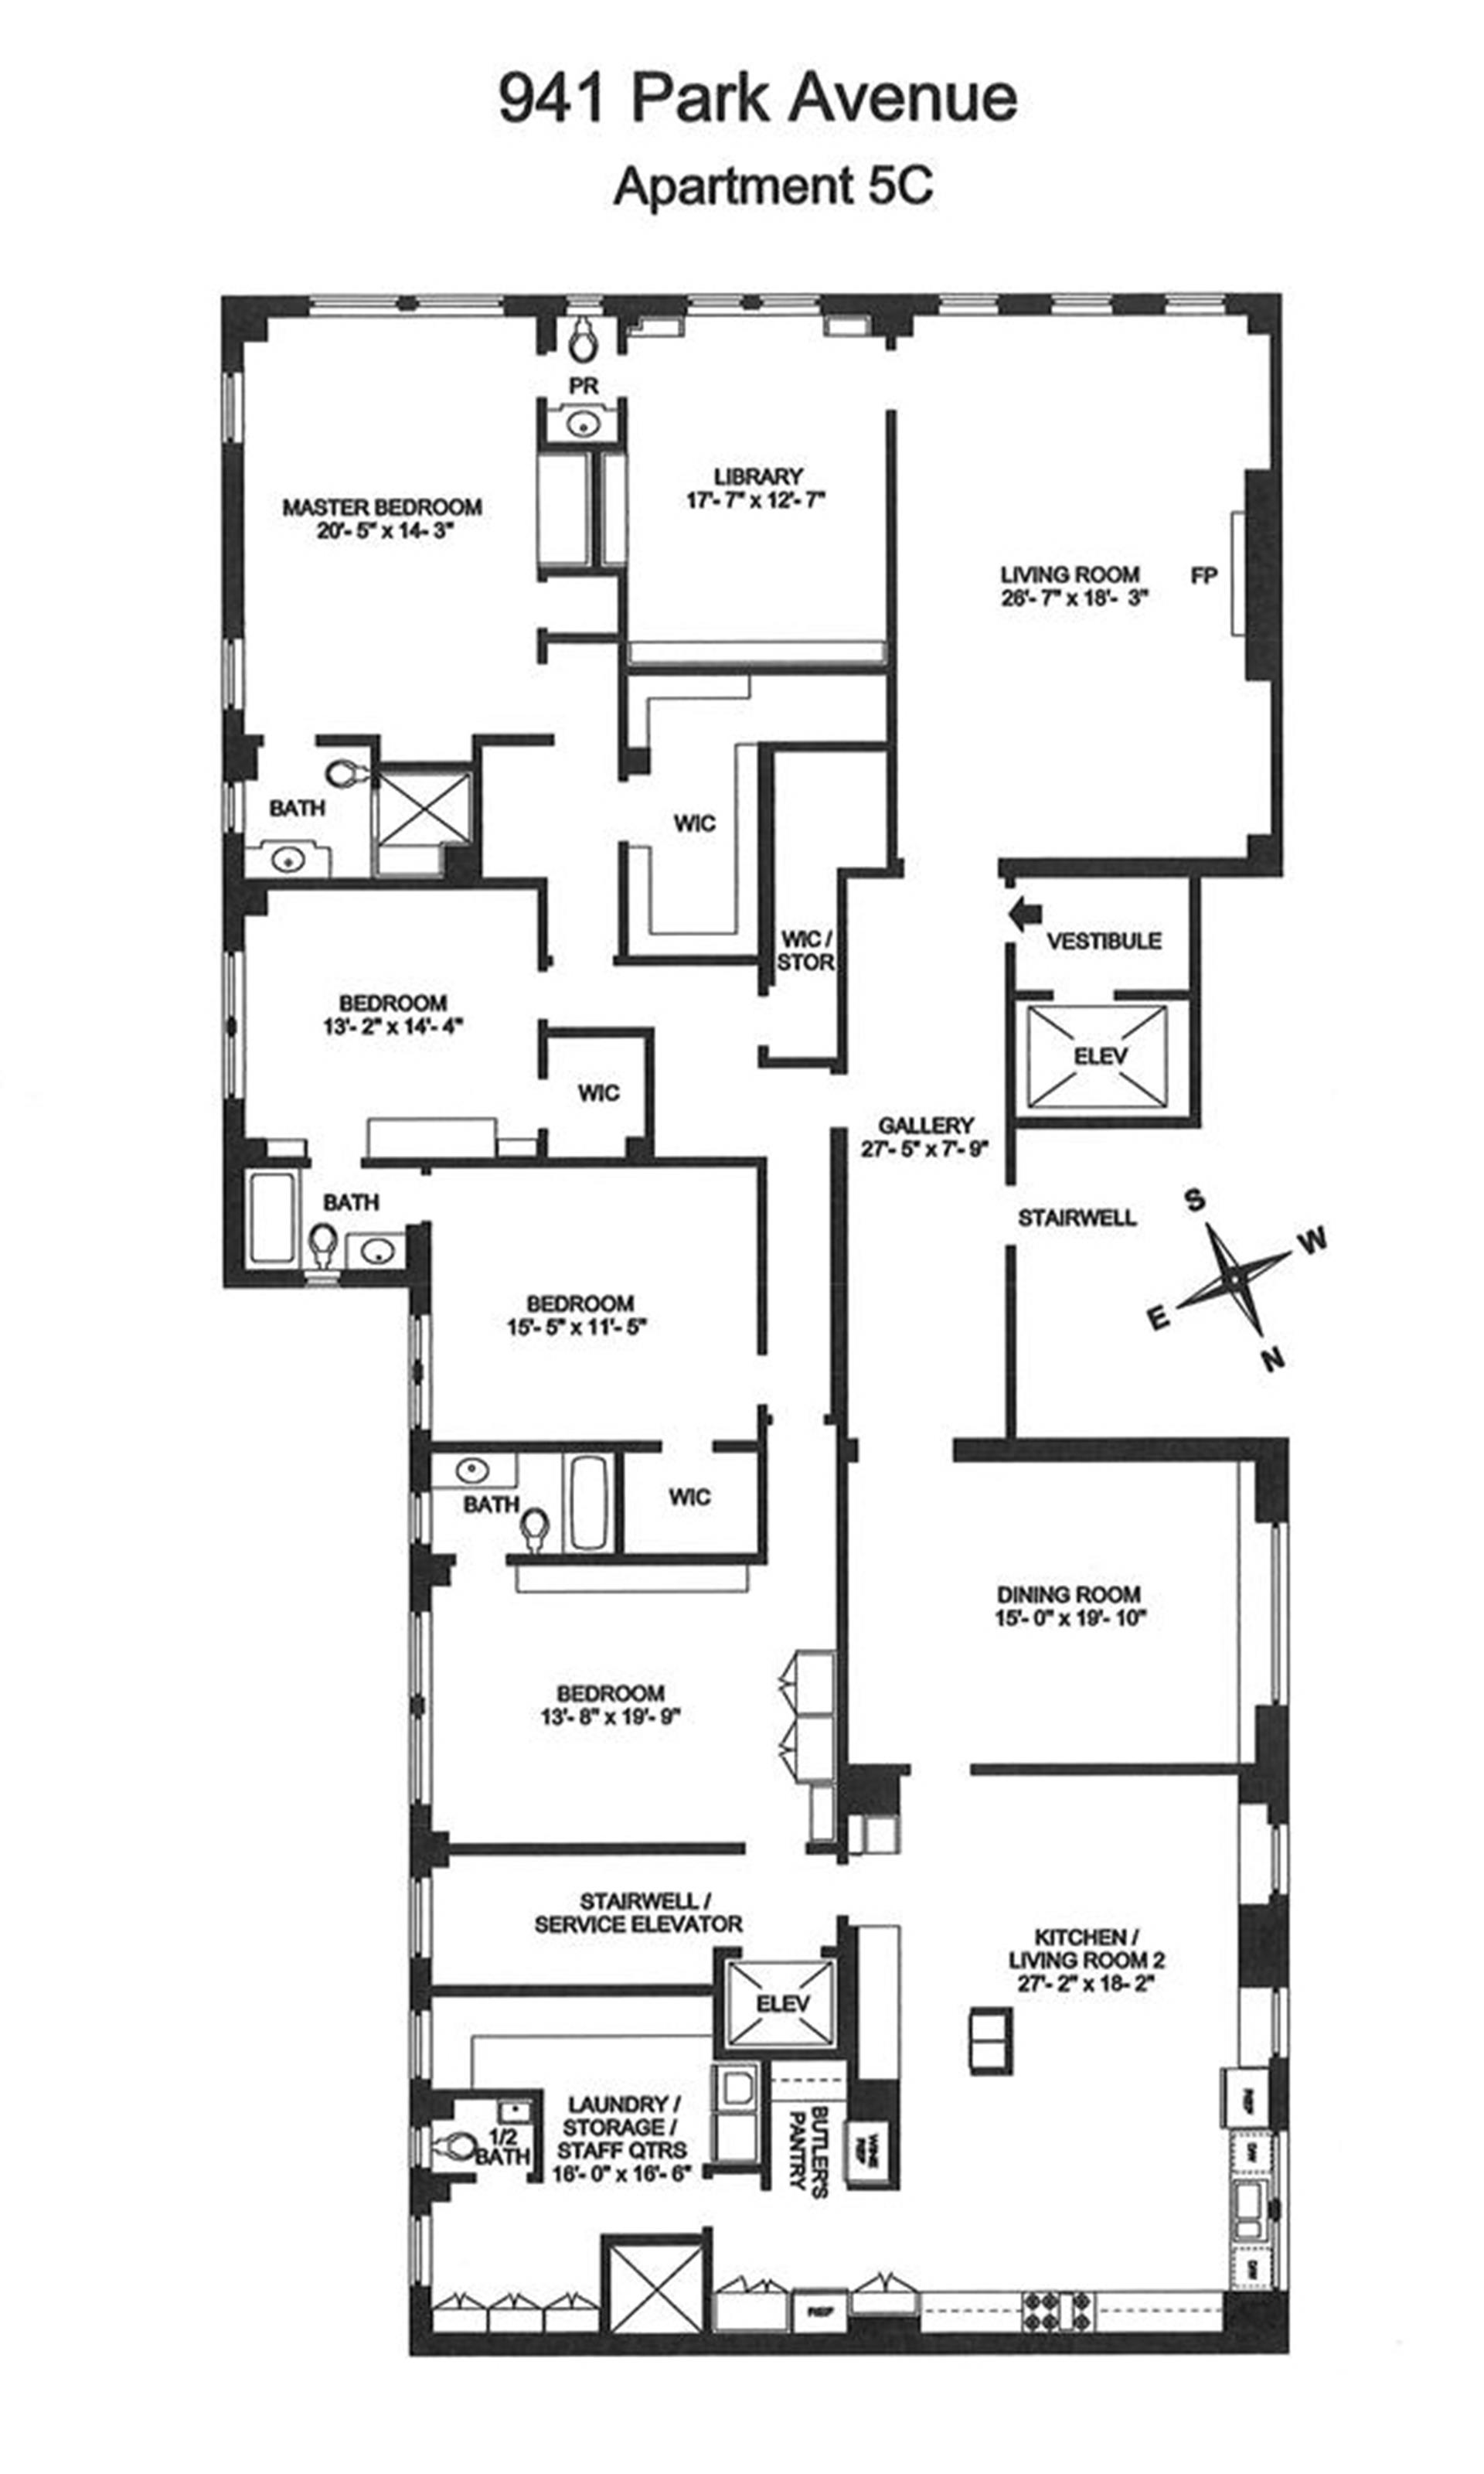 Floor plan of 941 Park Avenue, 5C - Upper East Side, New York